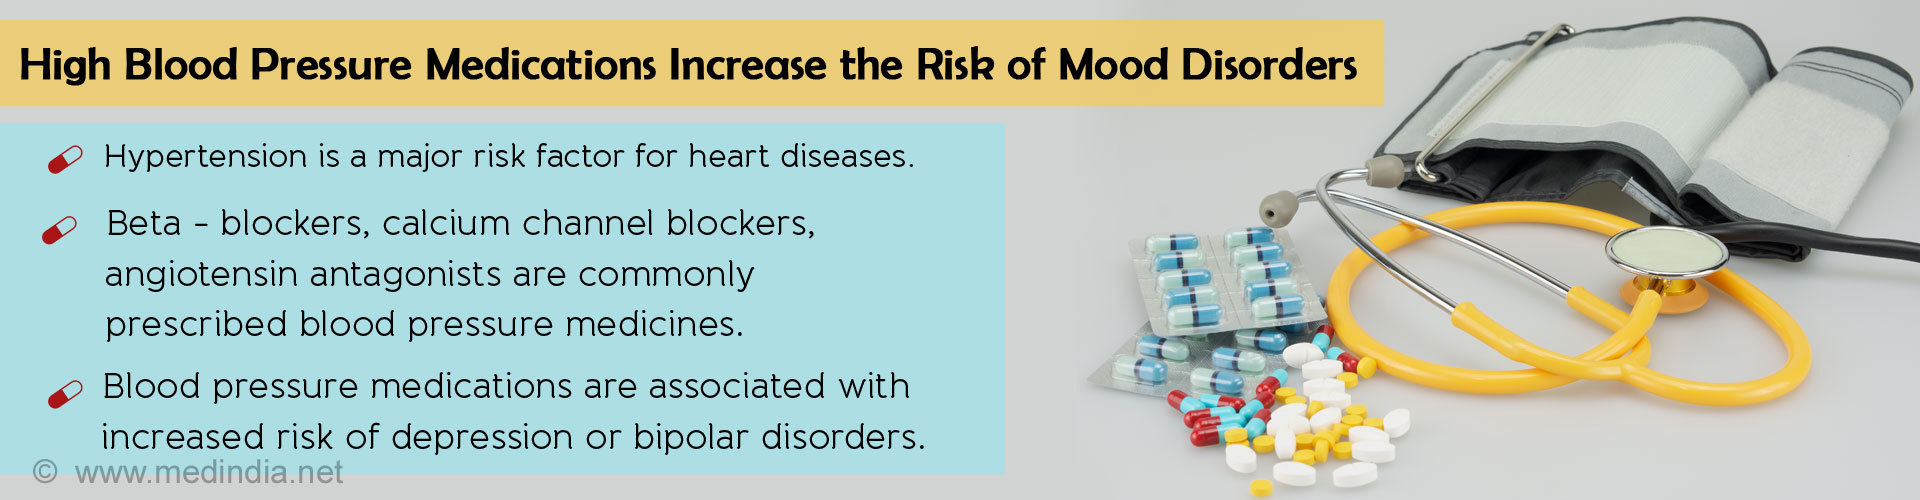 Blood Pressure Medicines May Increase Risk of Mood Disorders